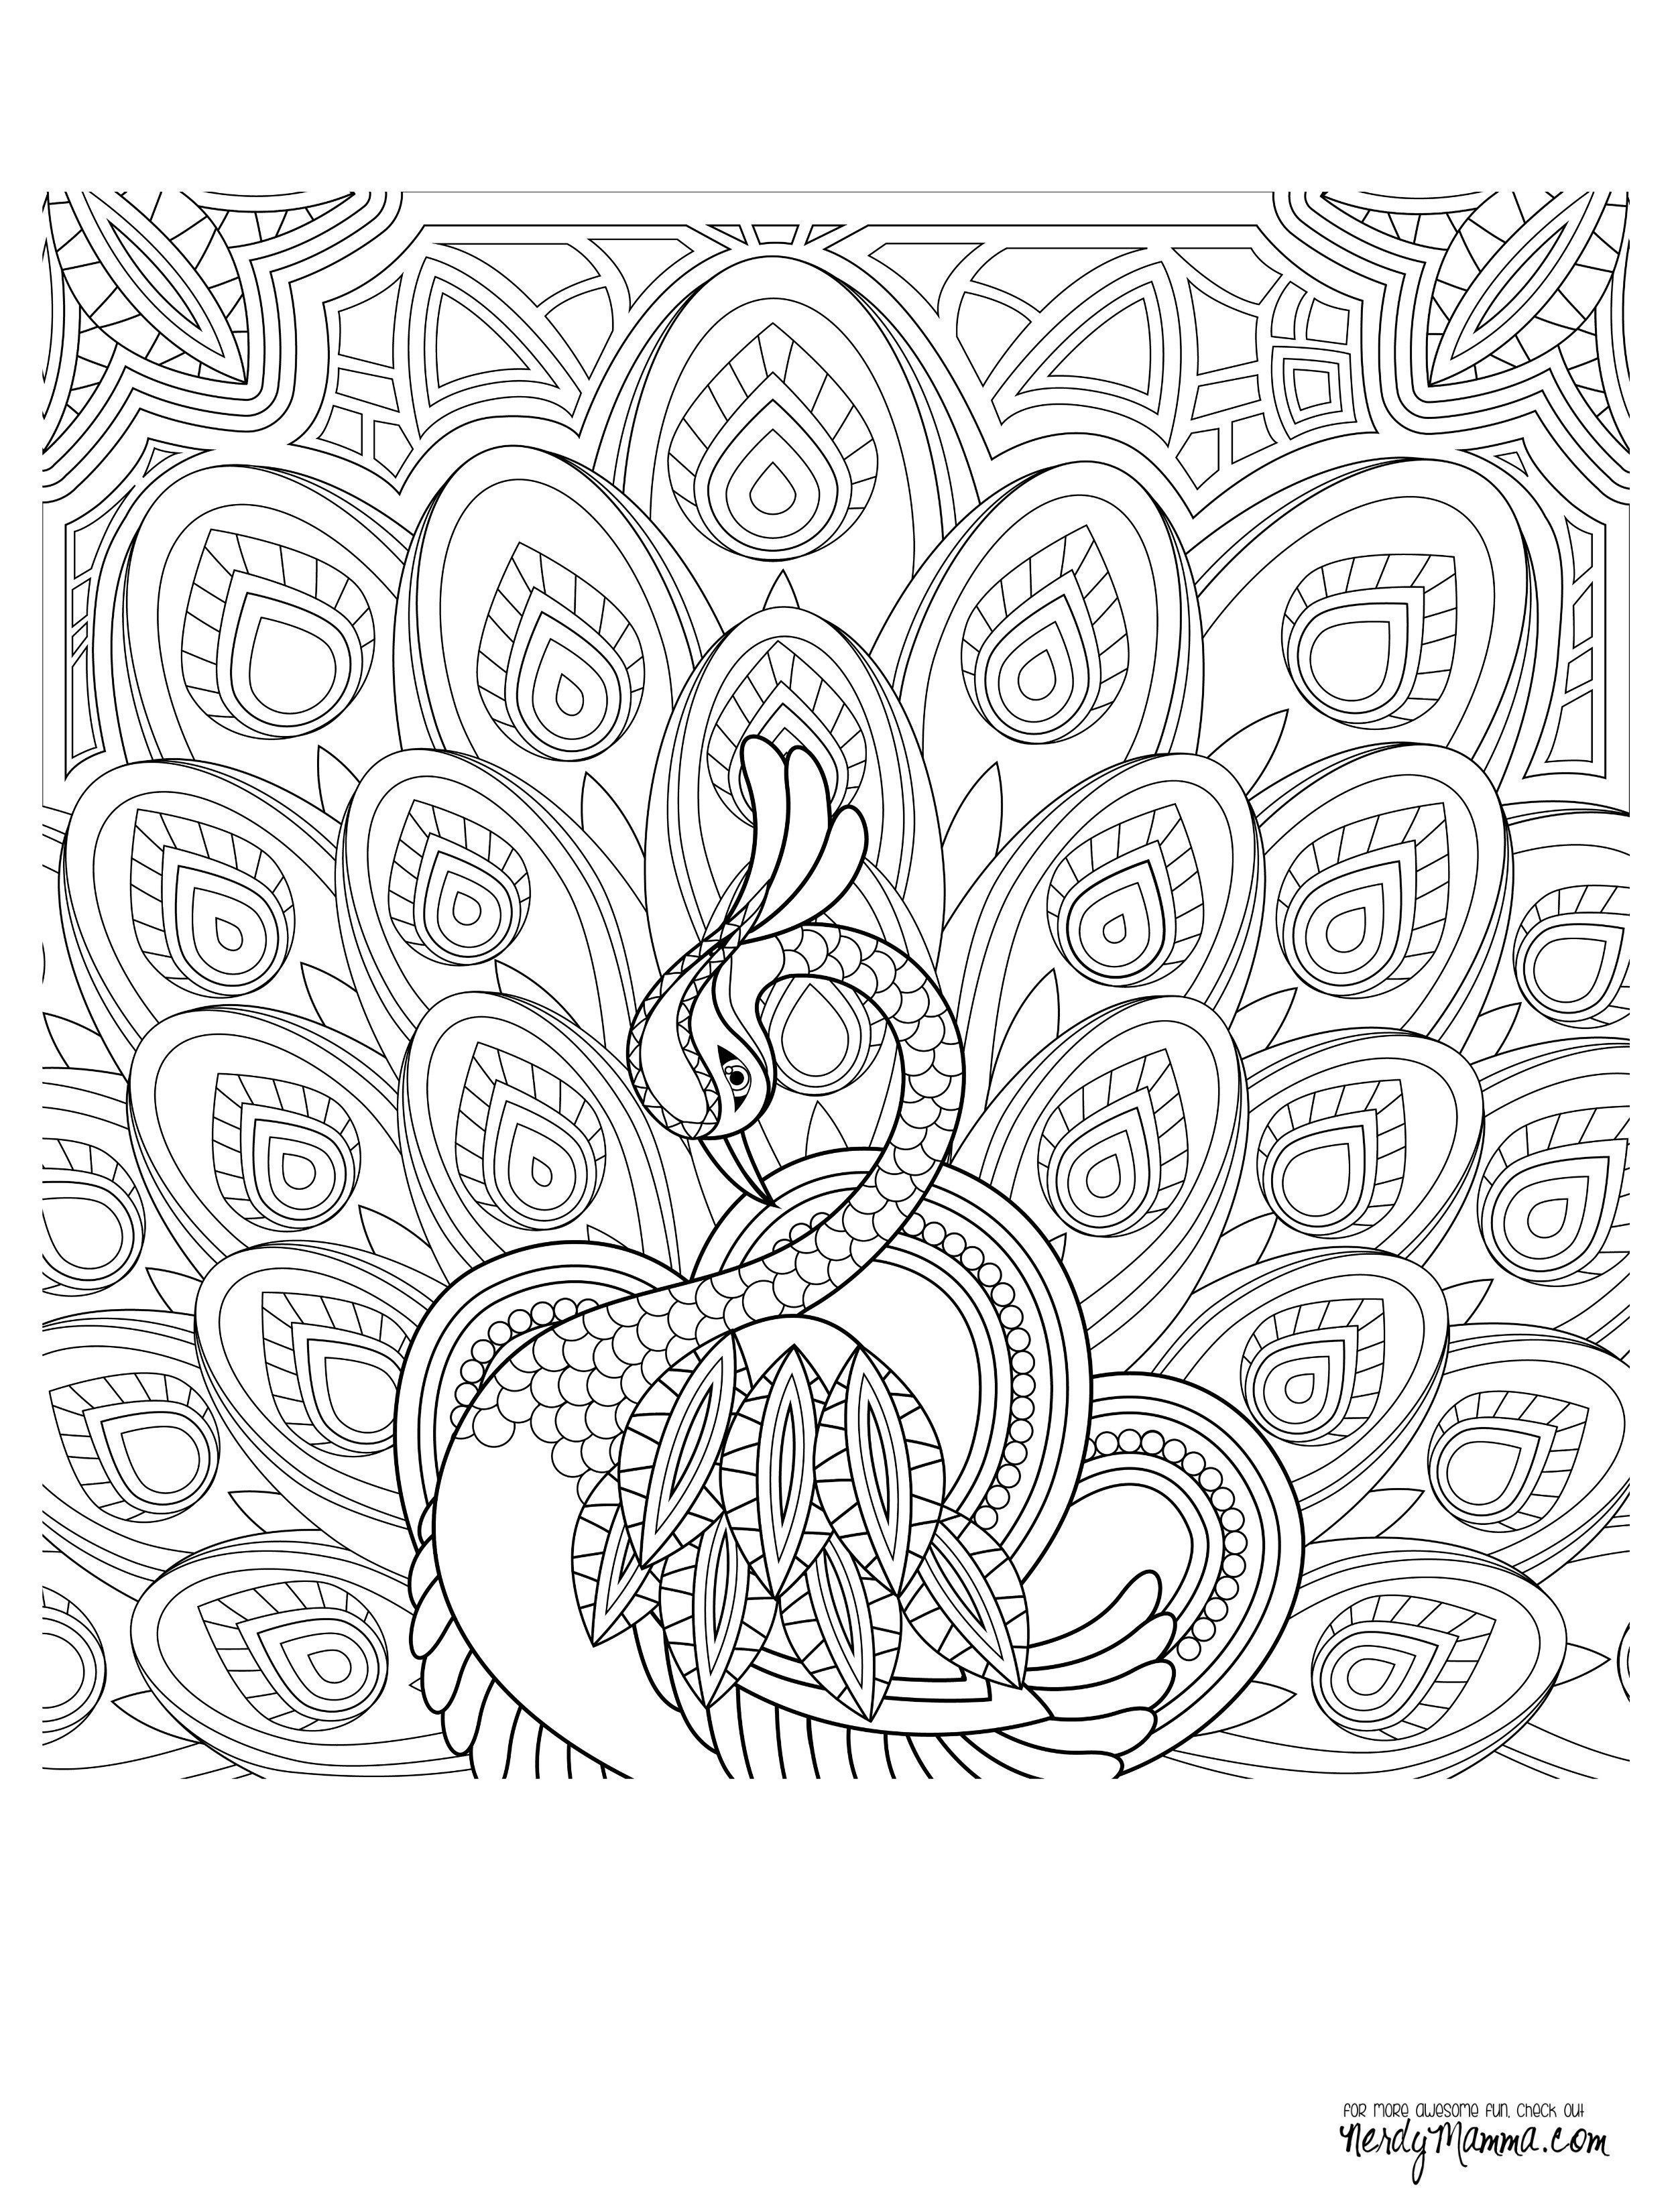 Inspirational Cesar Chavez Coloring Page – Lovespells - Cesar Chavez Free Printable Worksheets